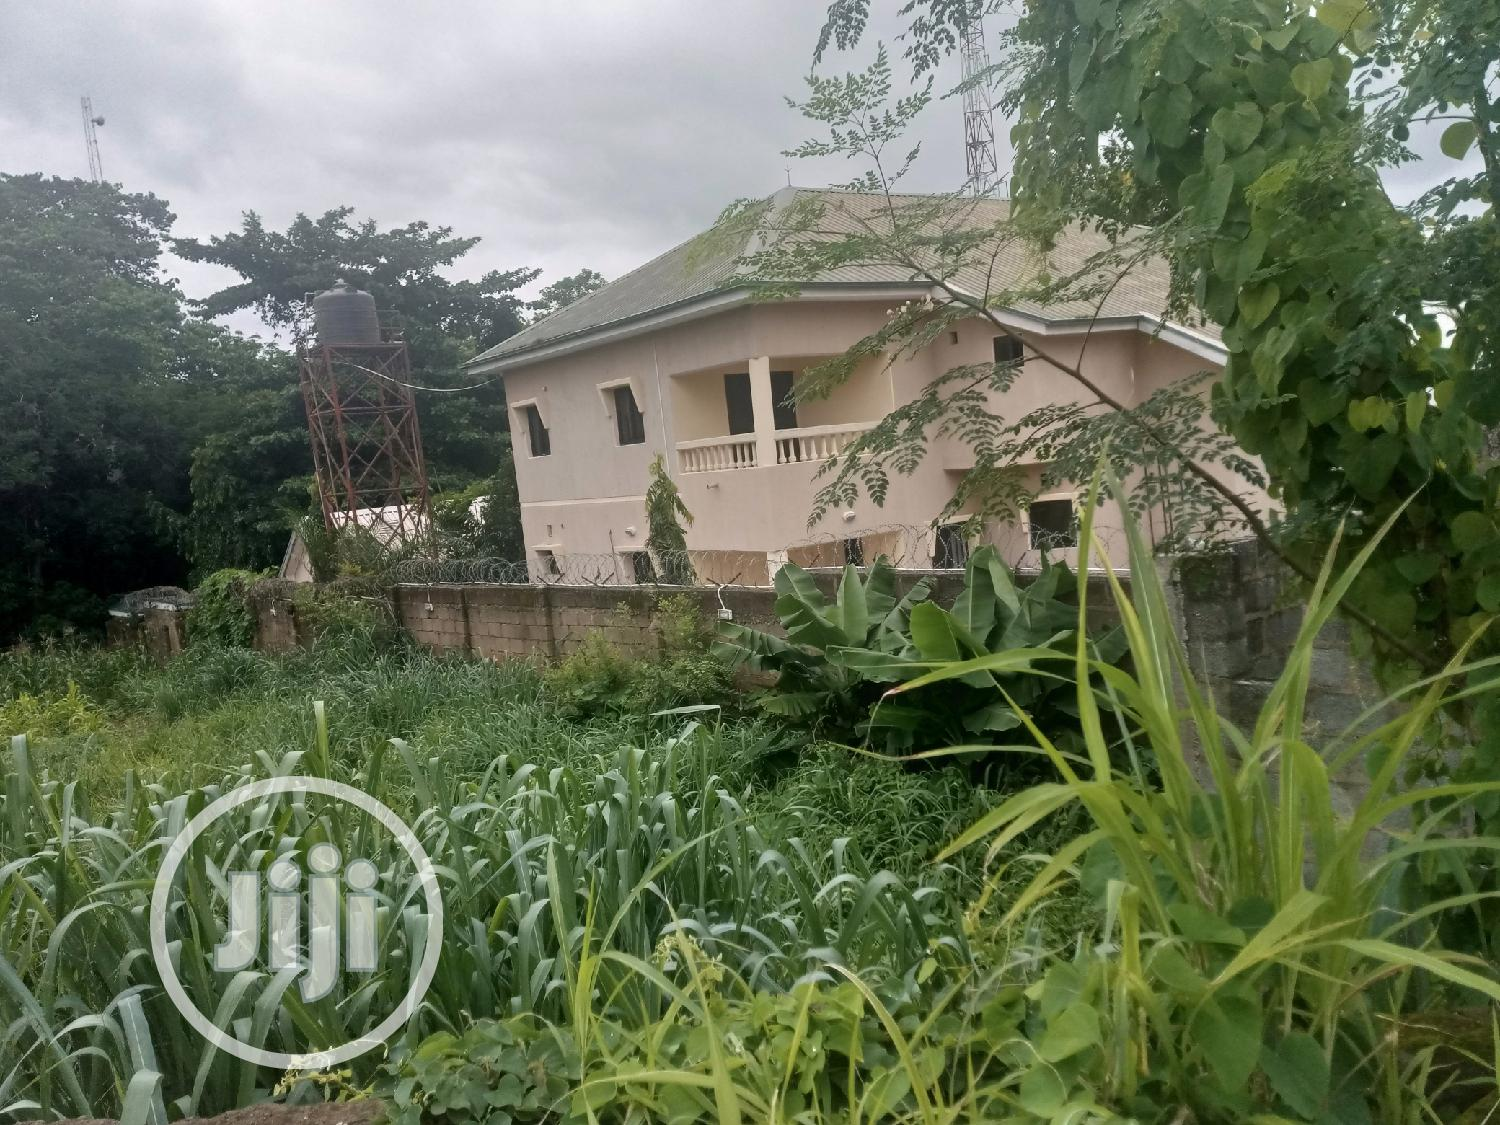 3,041sqm Residential Land for Sale at Garki, C of O